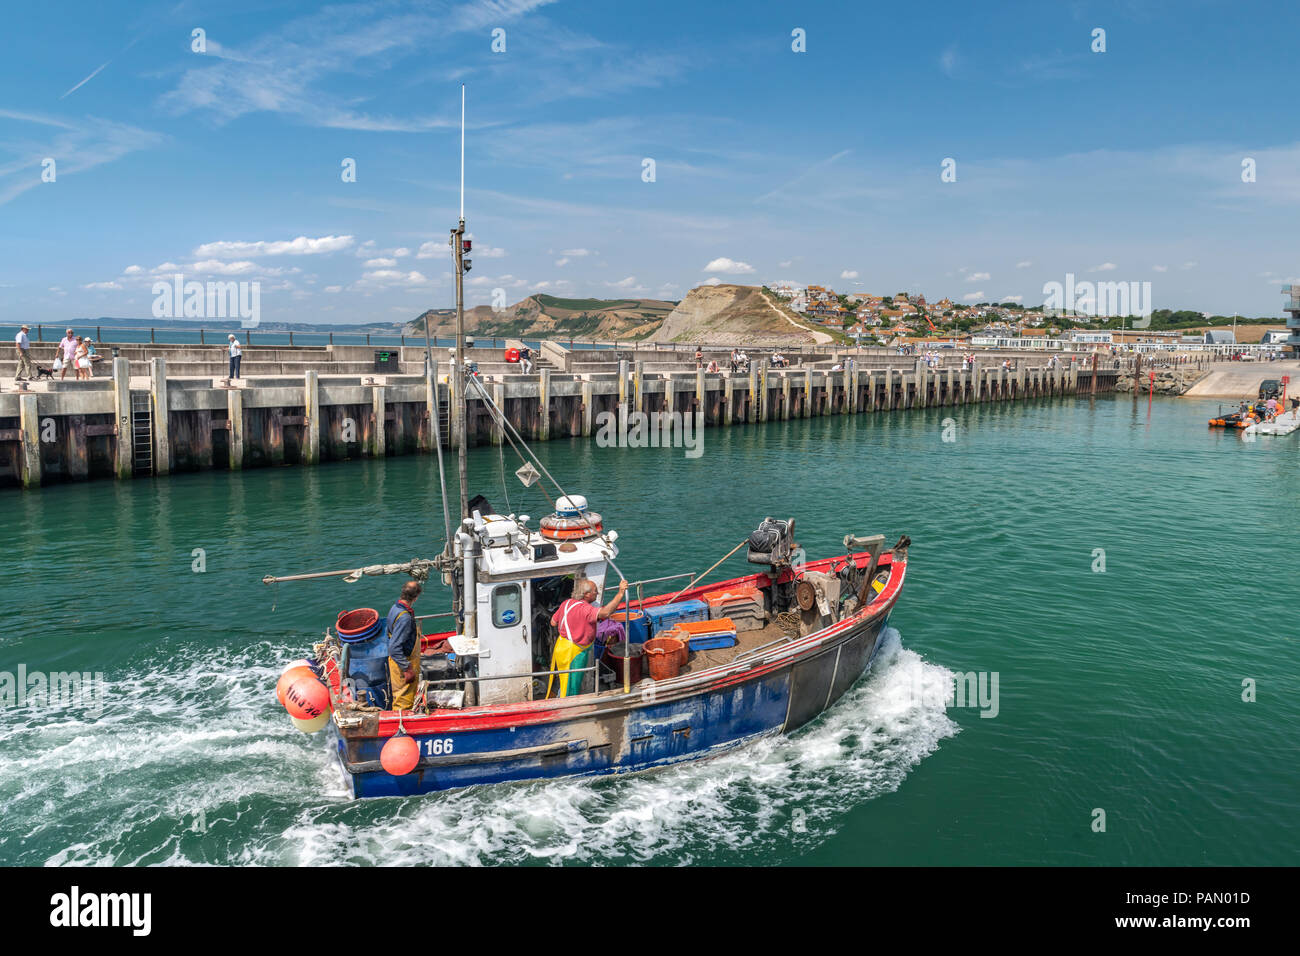 A little fishing boat returns with its catch to the picturesque harbour at West Bay in Dorset, made famous as the location for the television series ' - Stock Image